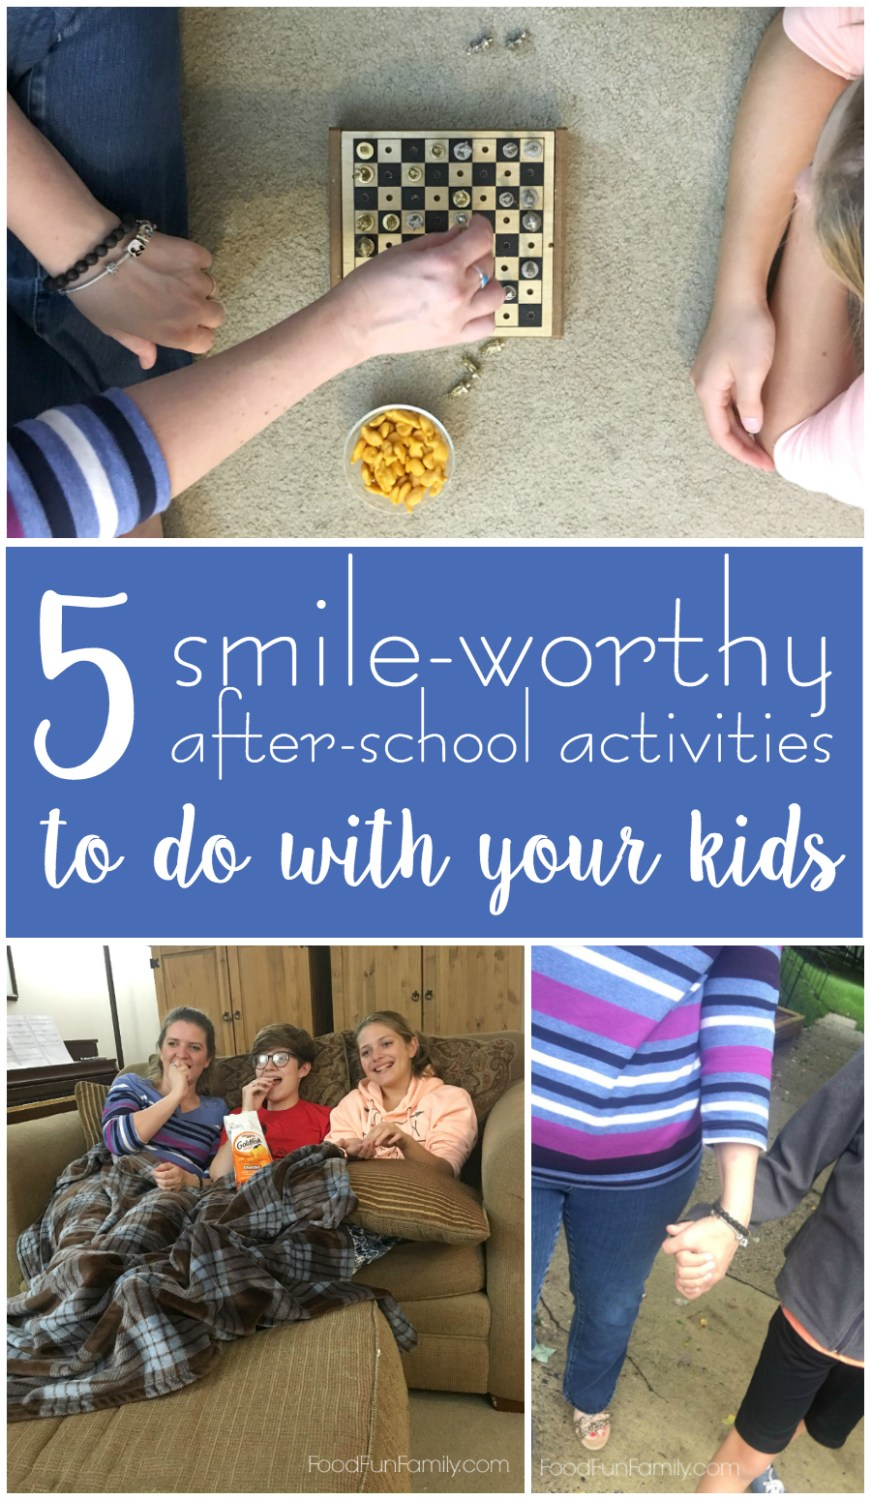 5 Smile-Worthy after-school activities to do with your kids #GoldfishSmiles